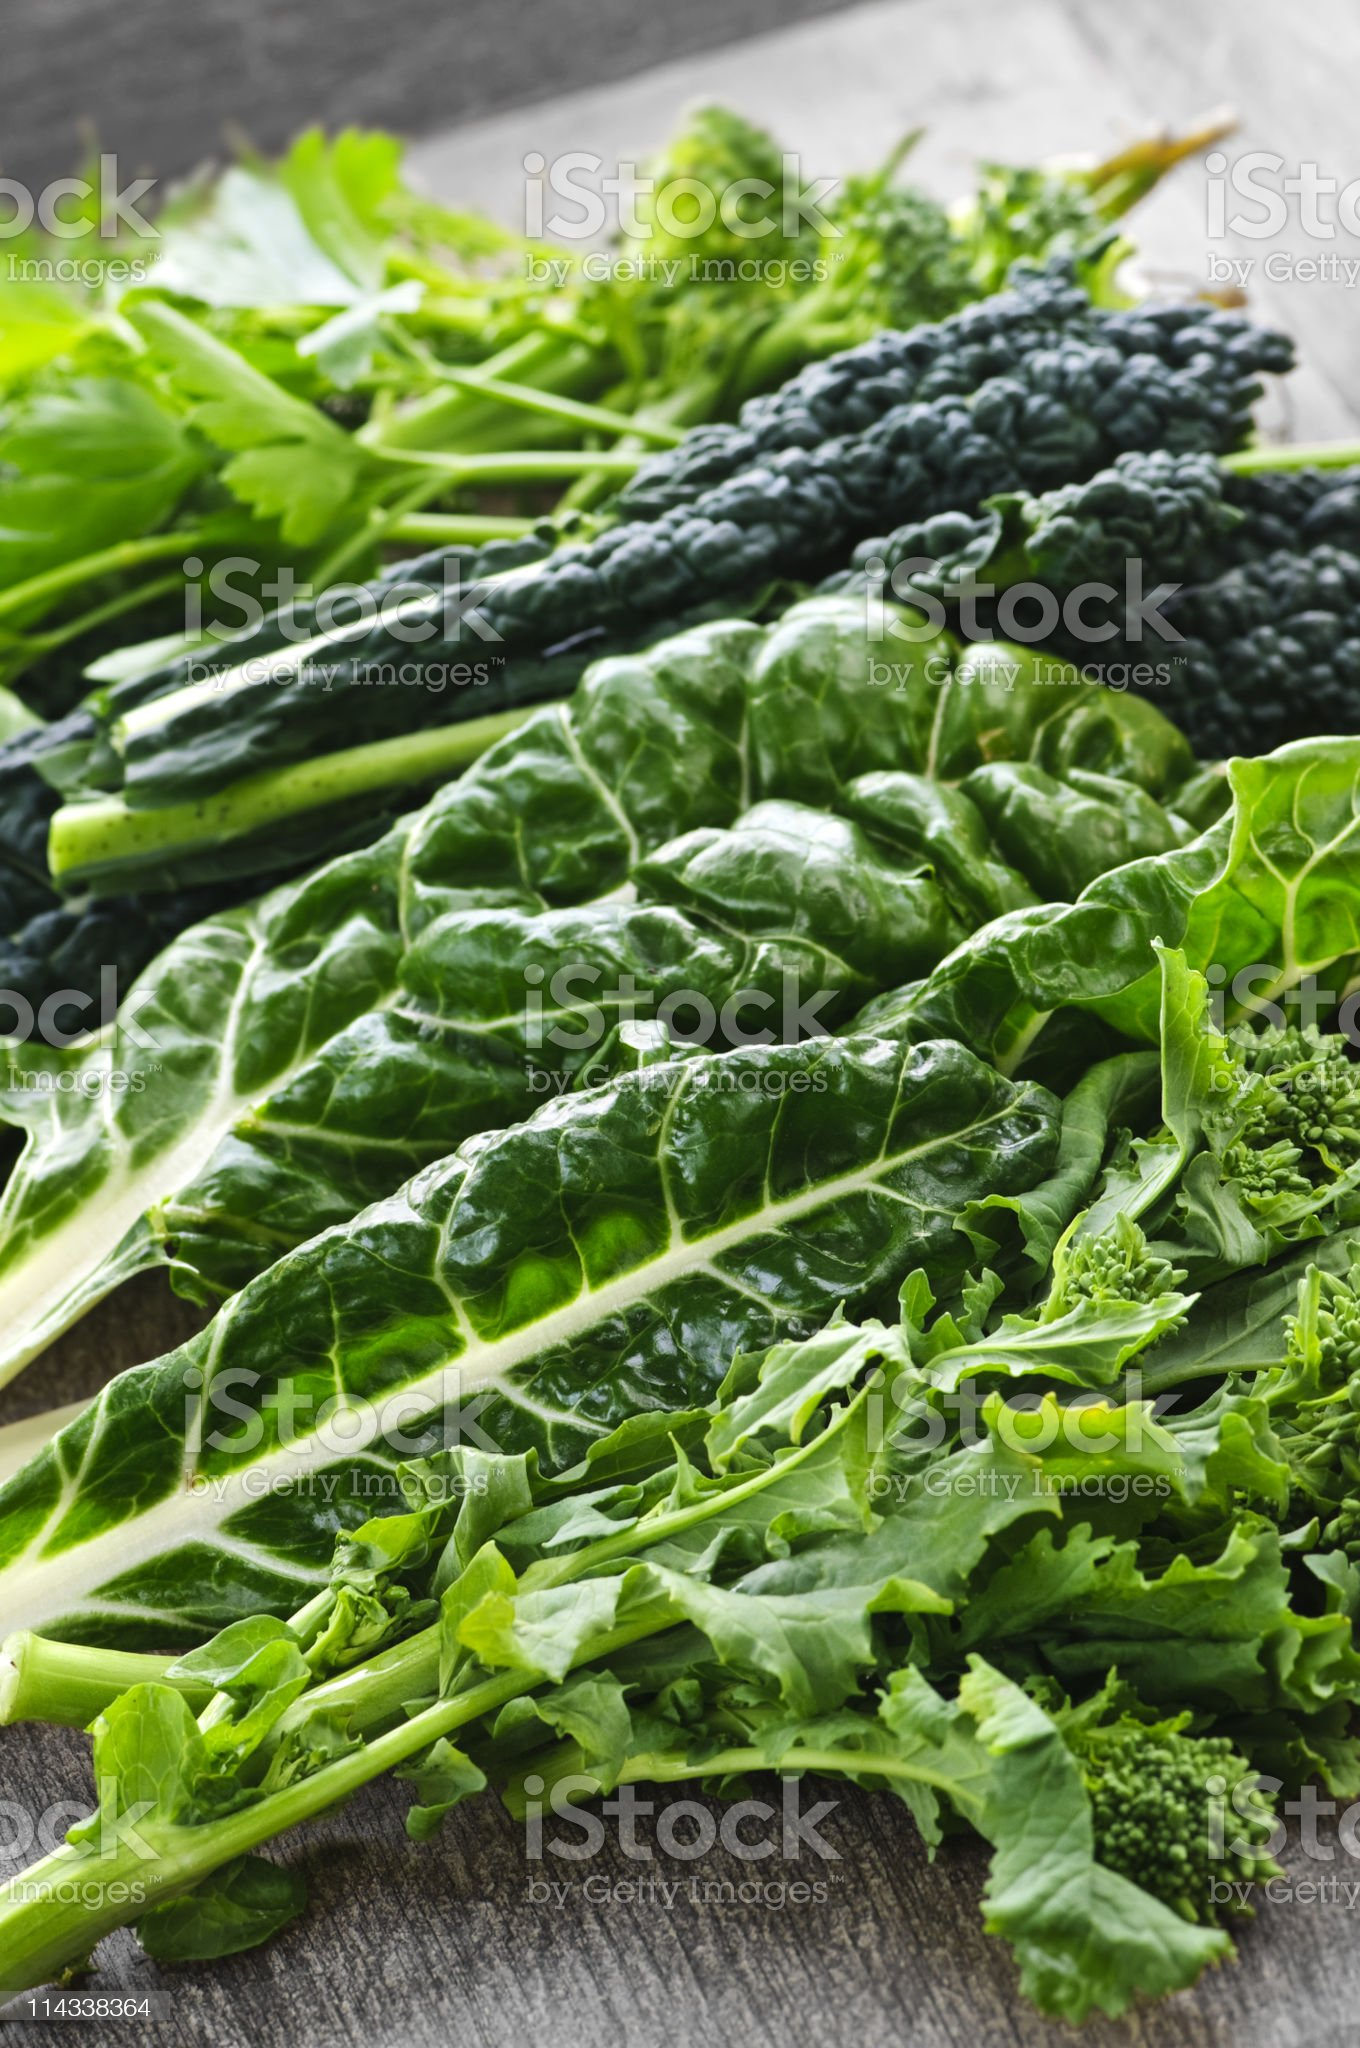 Dark green leafy vegetables royalty-free stock photo